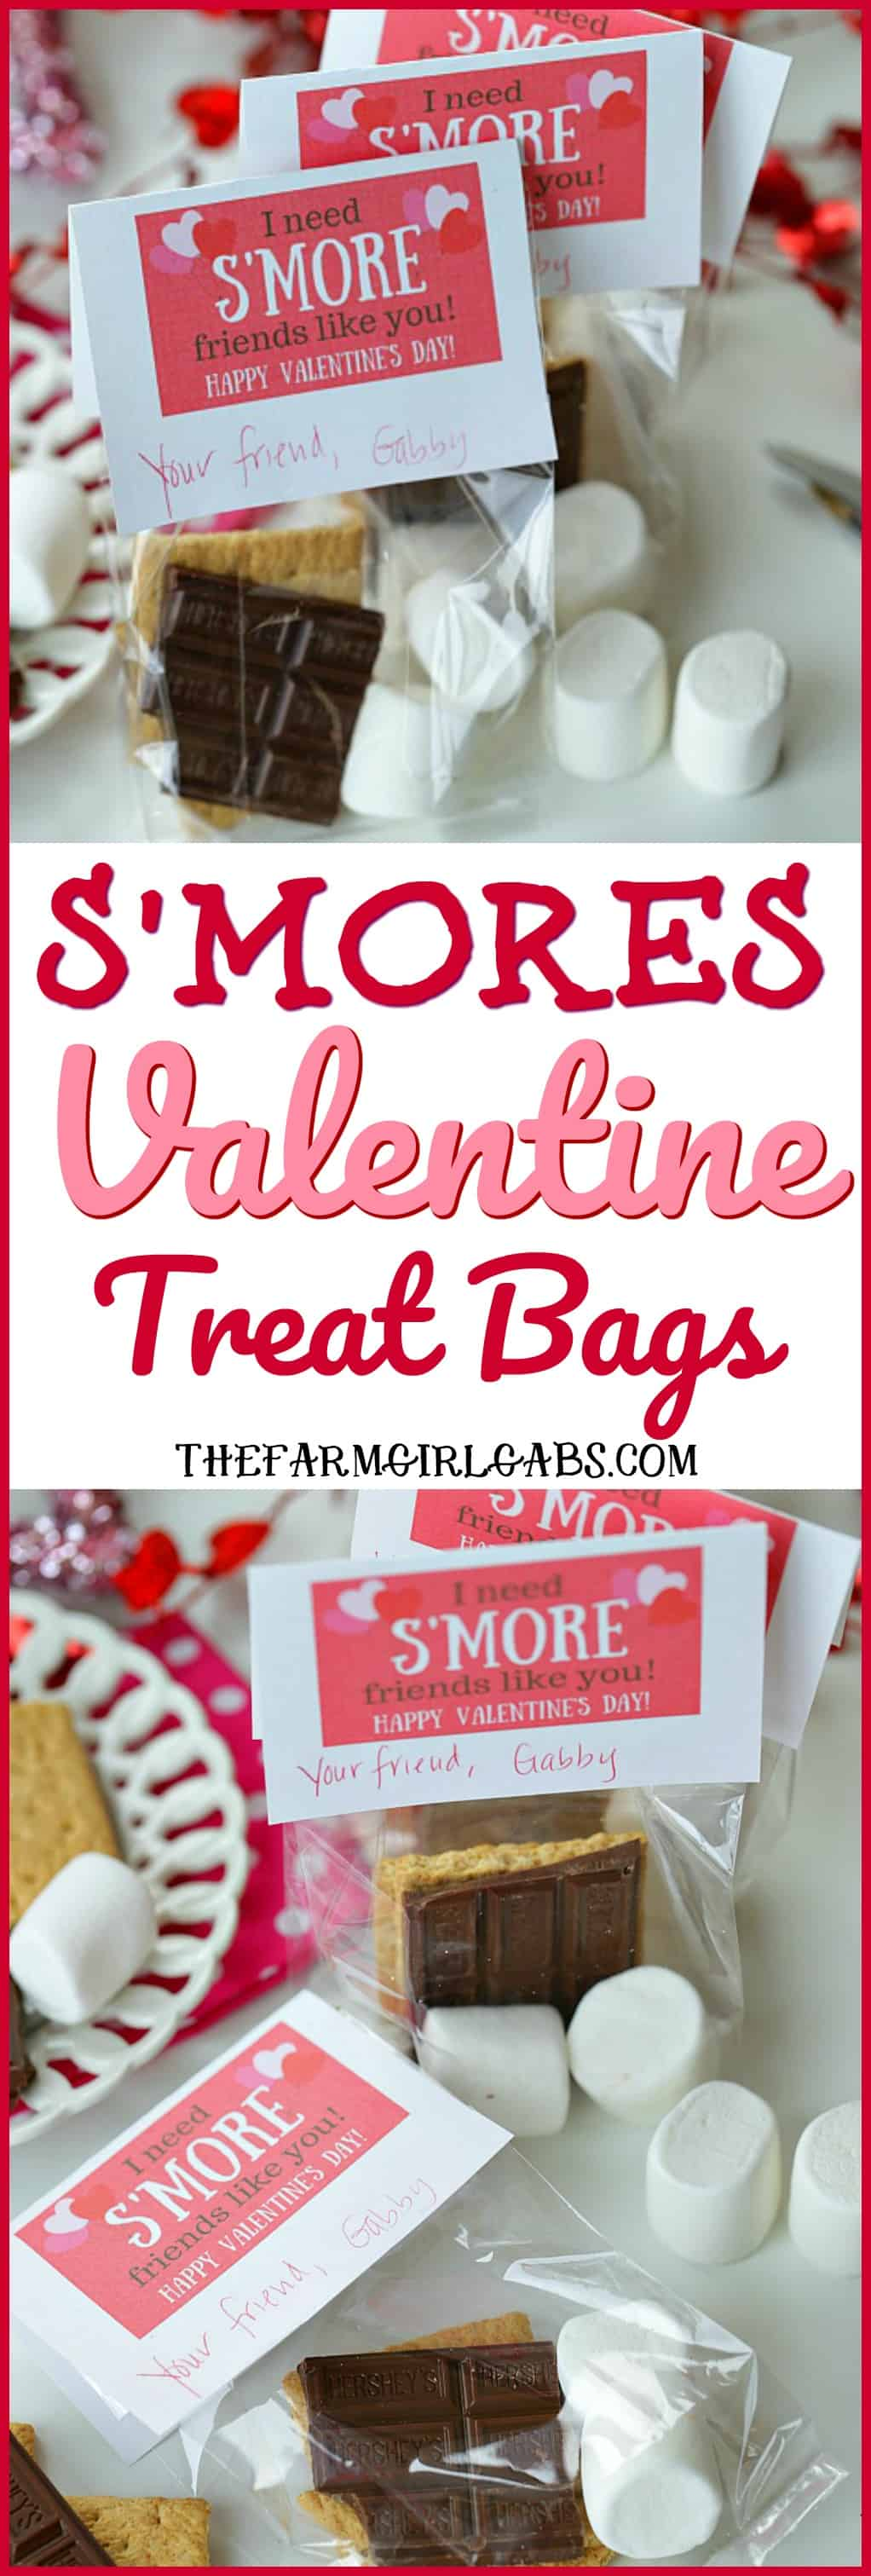 Share some campfire sweetness with your friends and create these cute S'Mores Valentine Treat Bags. #Valentines #Printables #ValentinesDayCraft #Cards